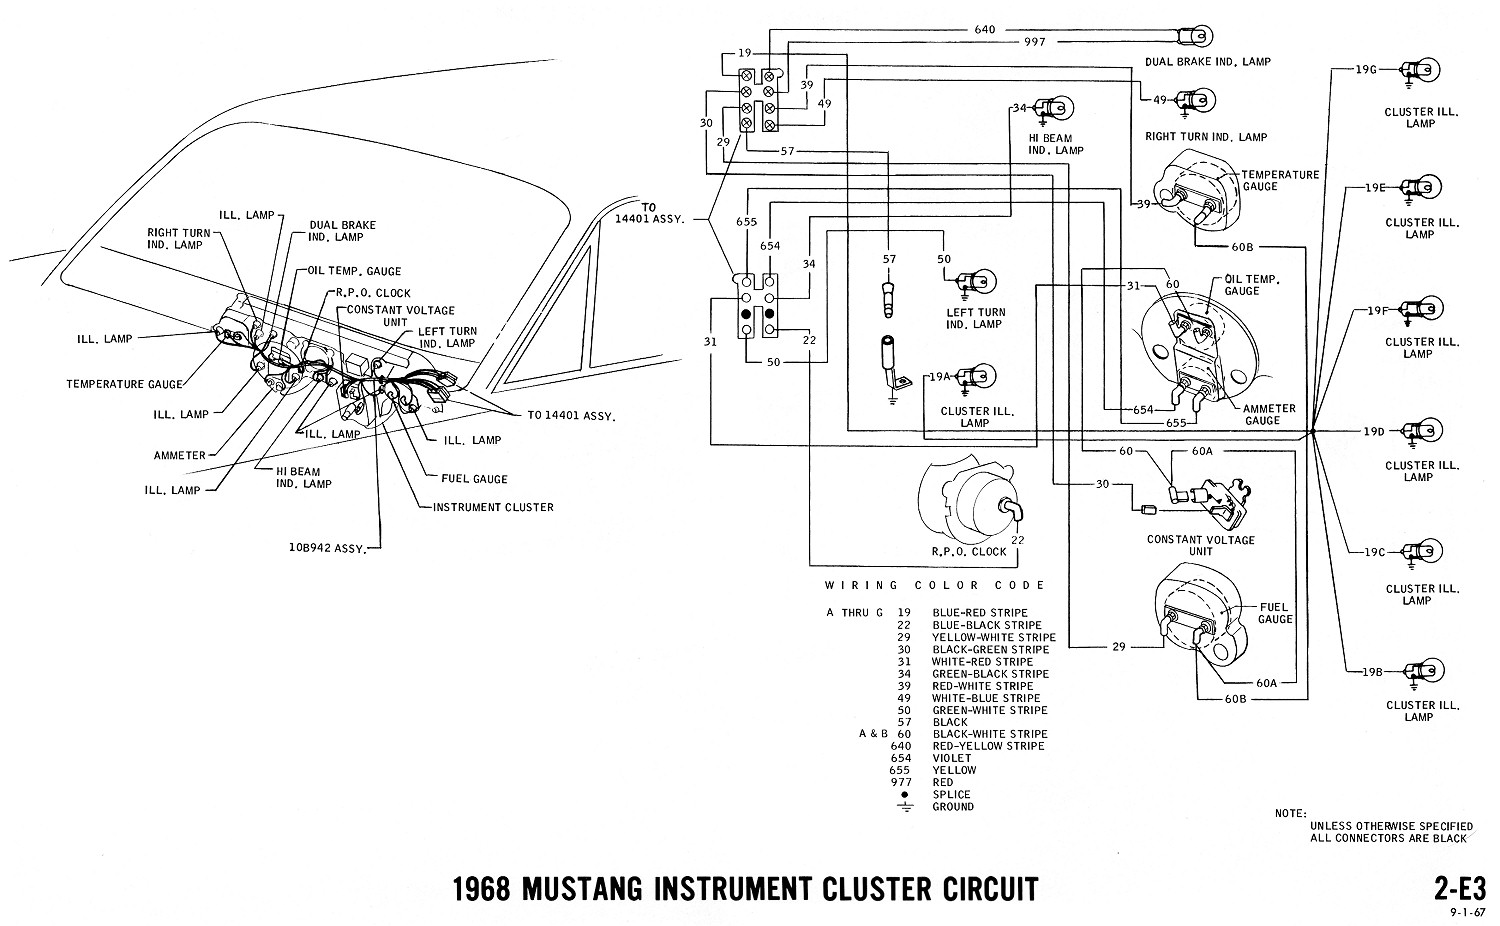 68 mustang engine wiring diagram 68 mustang engine wiring harness